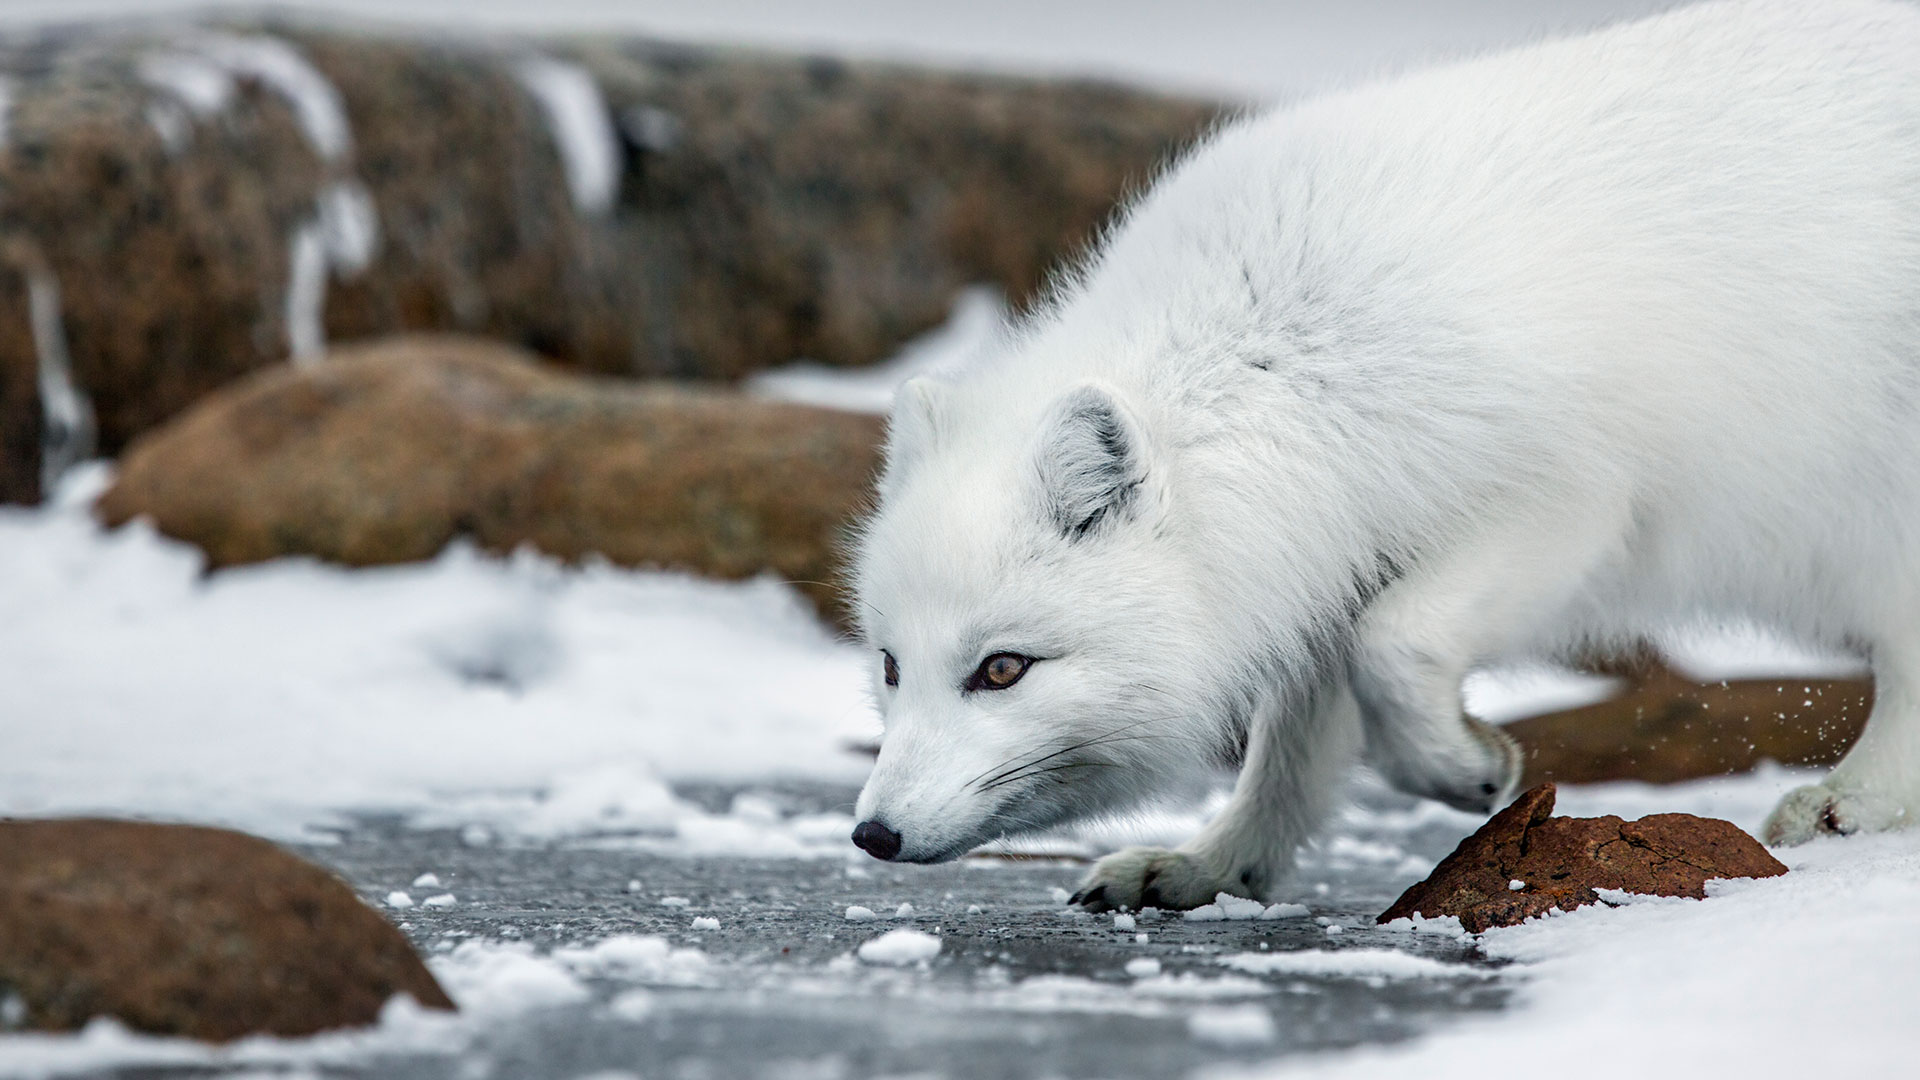 arctic fox wallpapers animals backgrounds grip seasons arcticfox animal quiz bbc background ep wallpaperplay bbcamerica thehunt